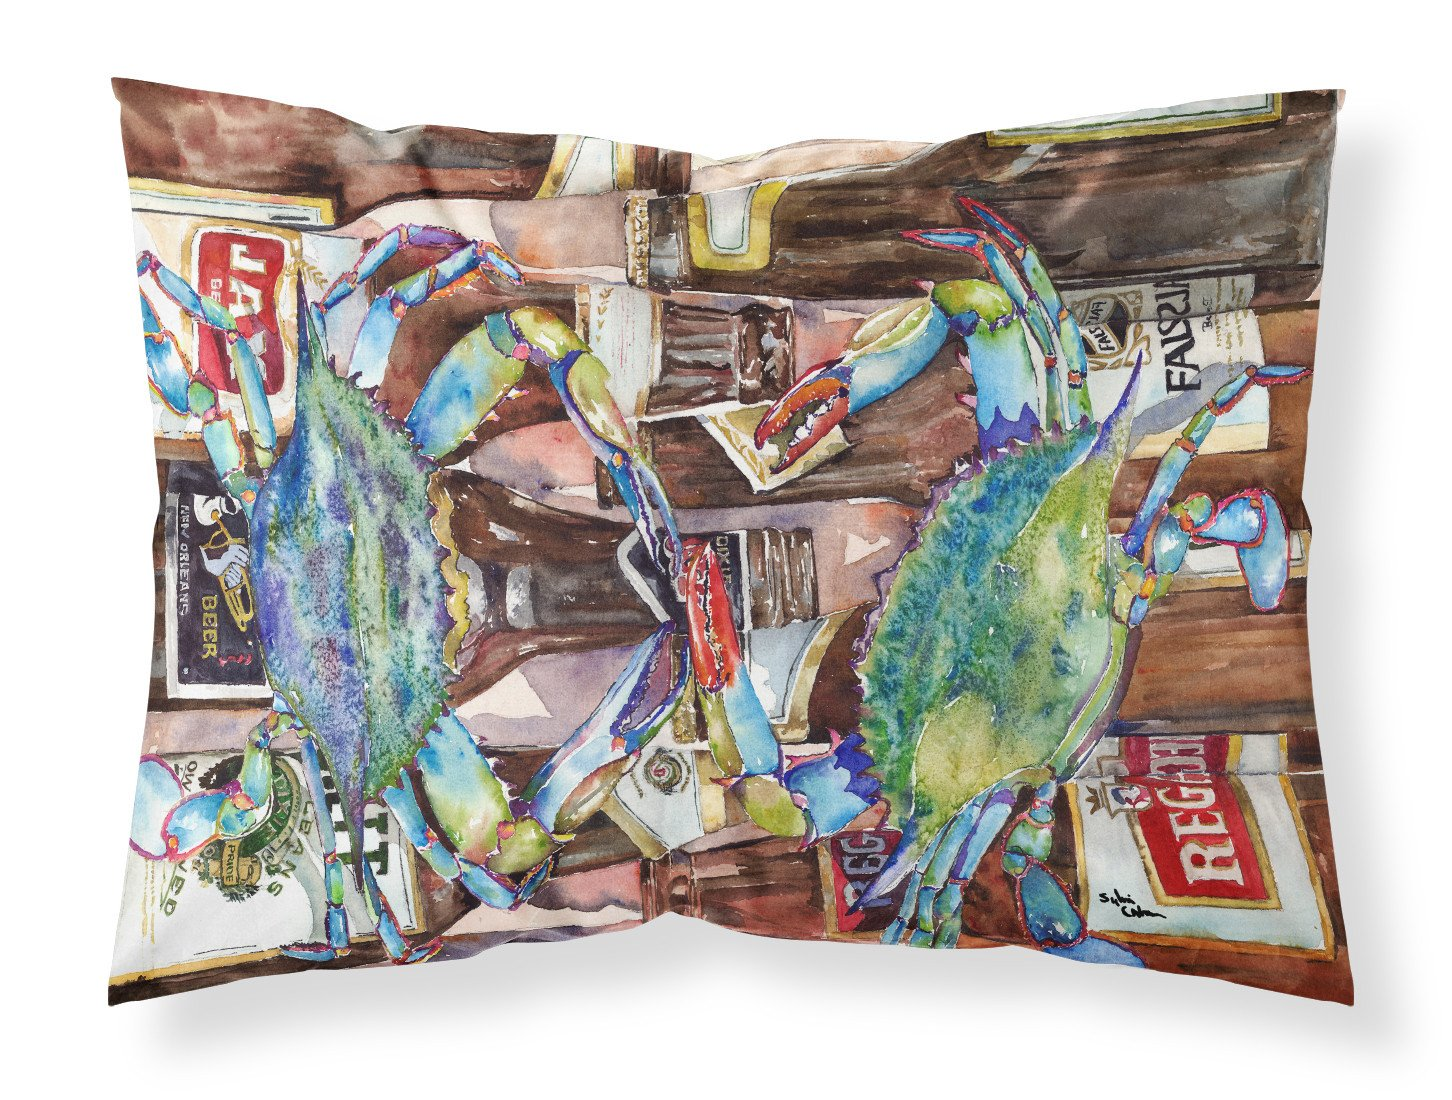 Buy this Blue Crabby New Orleans Beer Bottles Moisture wicking Fabric standard pillowcase